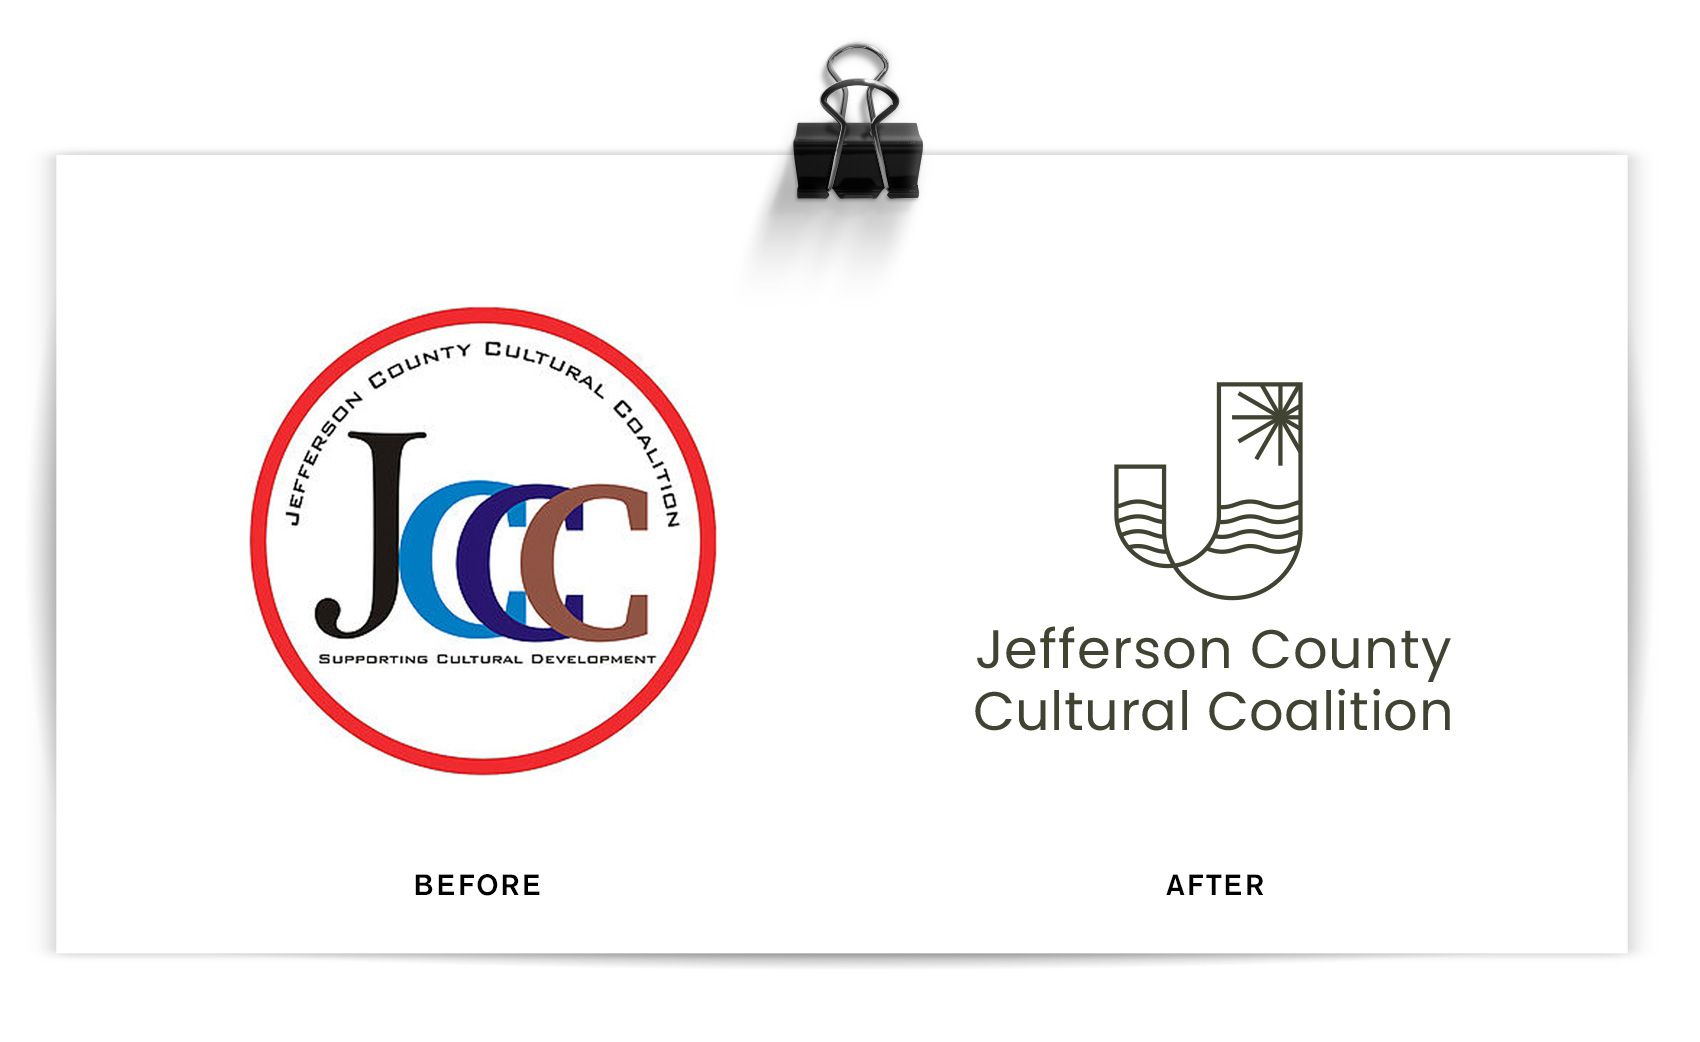 Logo redesign for Jefferson County Cultural Coalition.